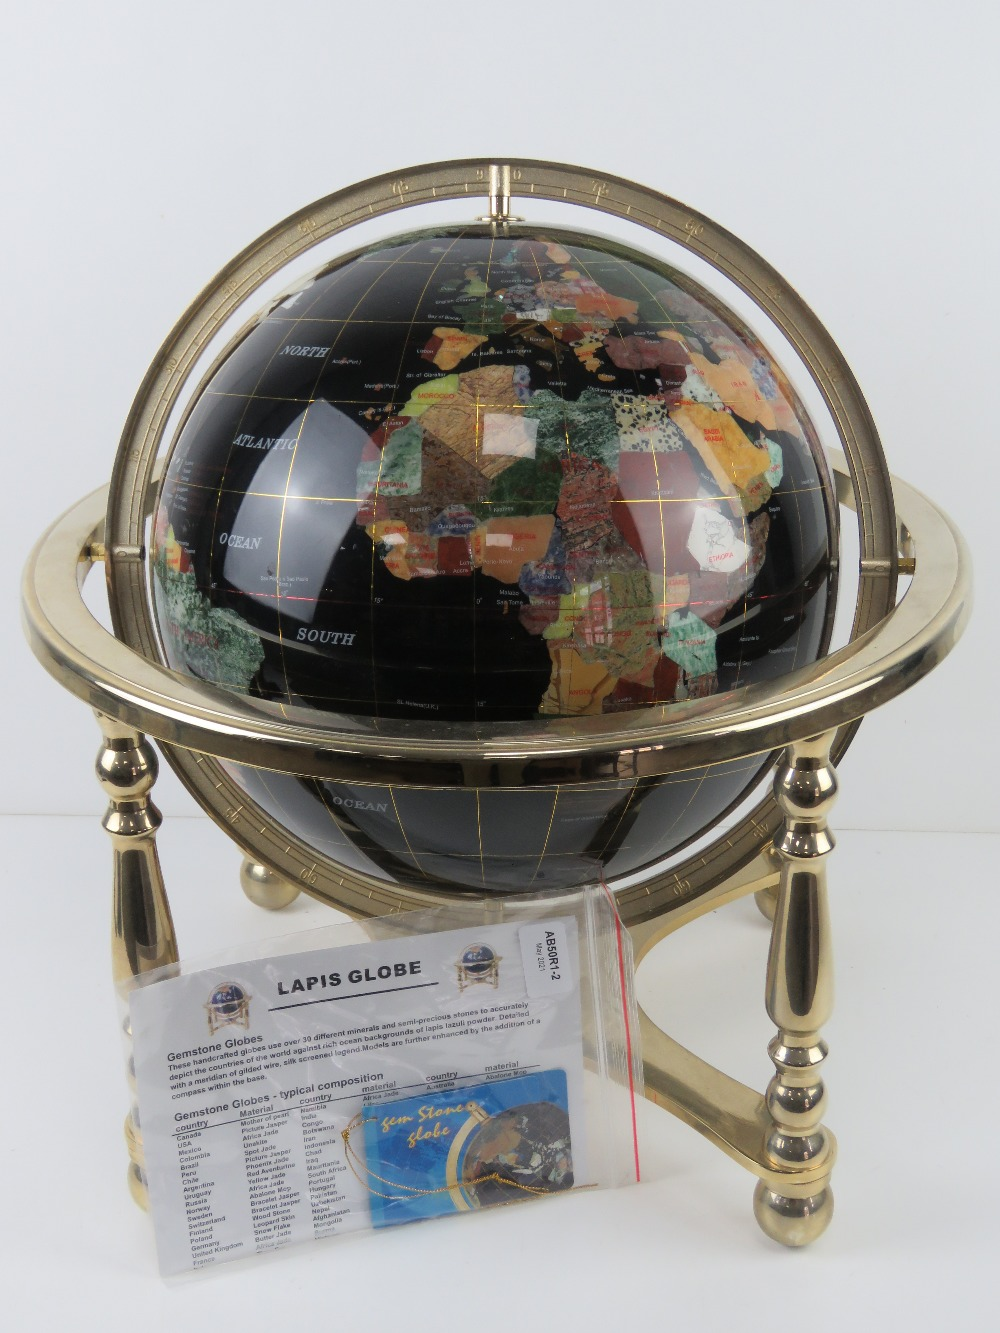 A 'Gemstone Globe' handcrafted with minerals and semi-precious stones including Lapis Lazuli powder